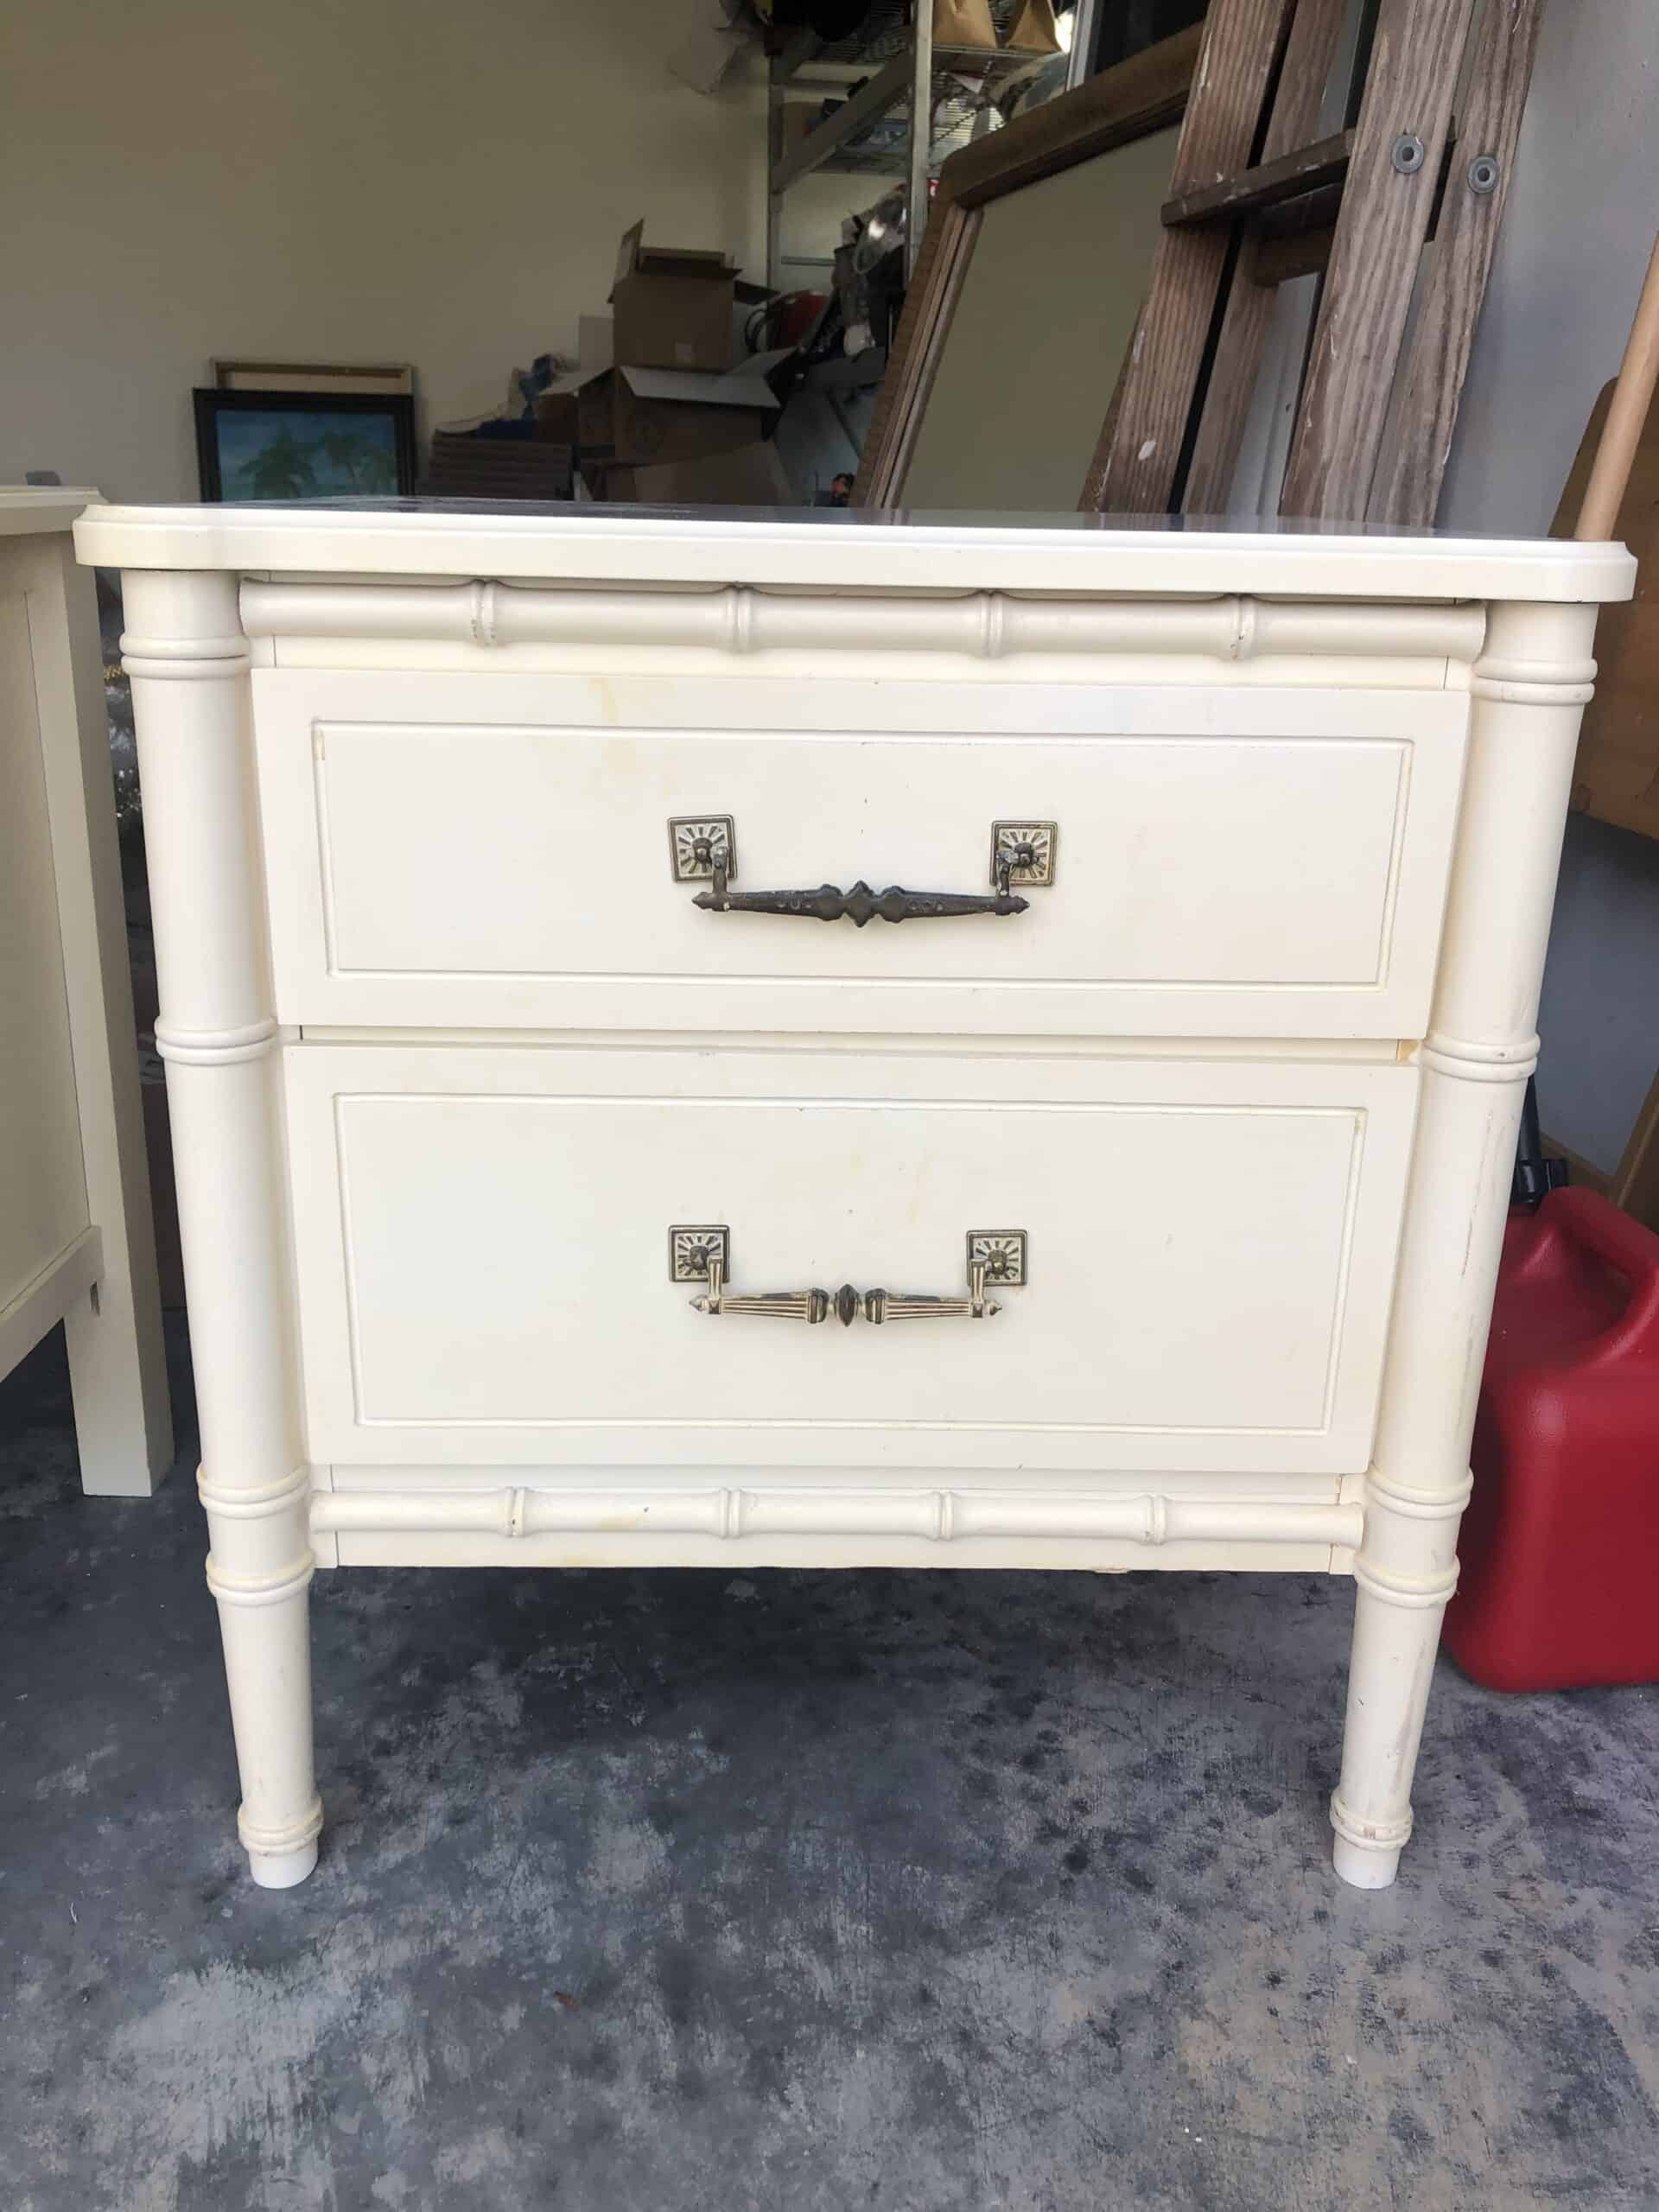 How to paint high gloss furniture